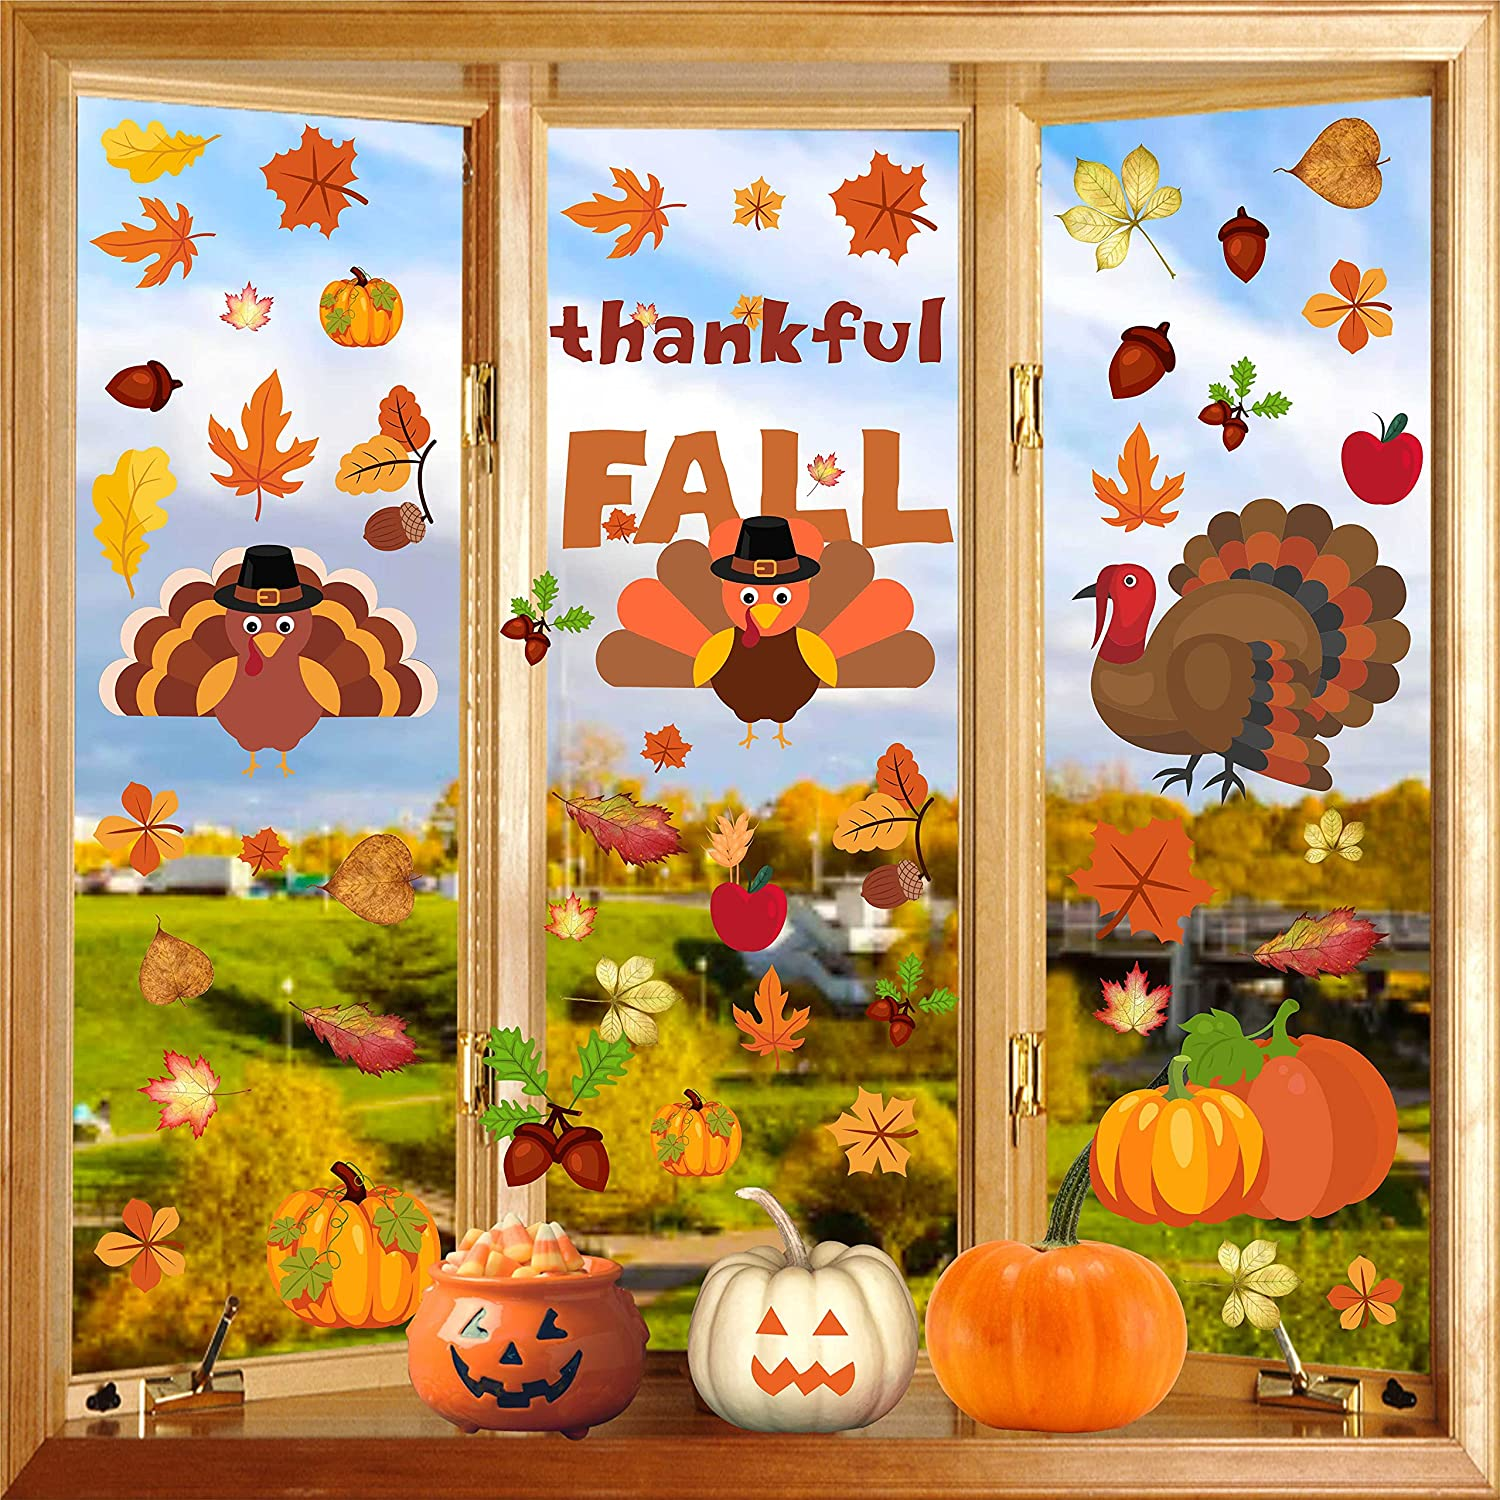 PARLAIM Large Size Los 2021 model Angeles Mall Thanksgiving Window Decor Decorations Clings